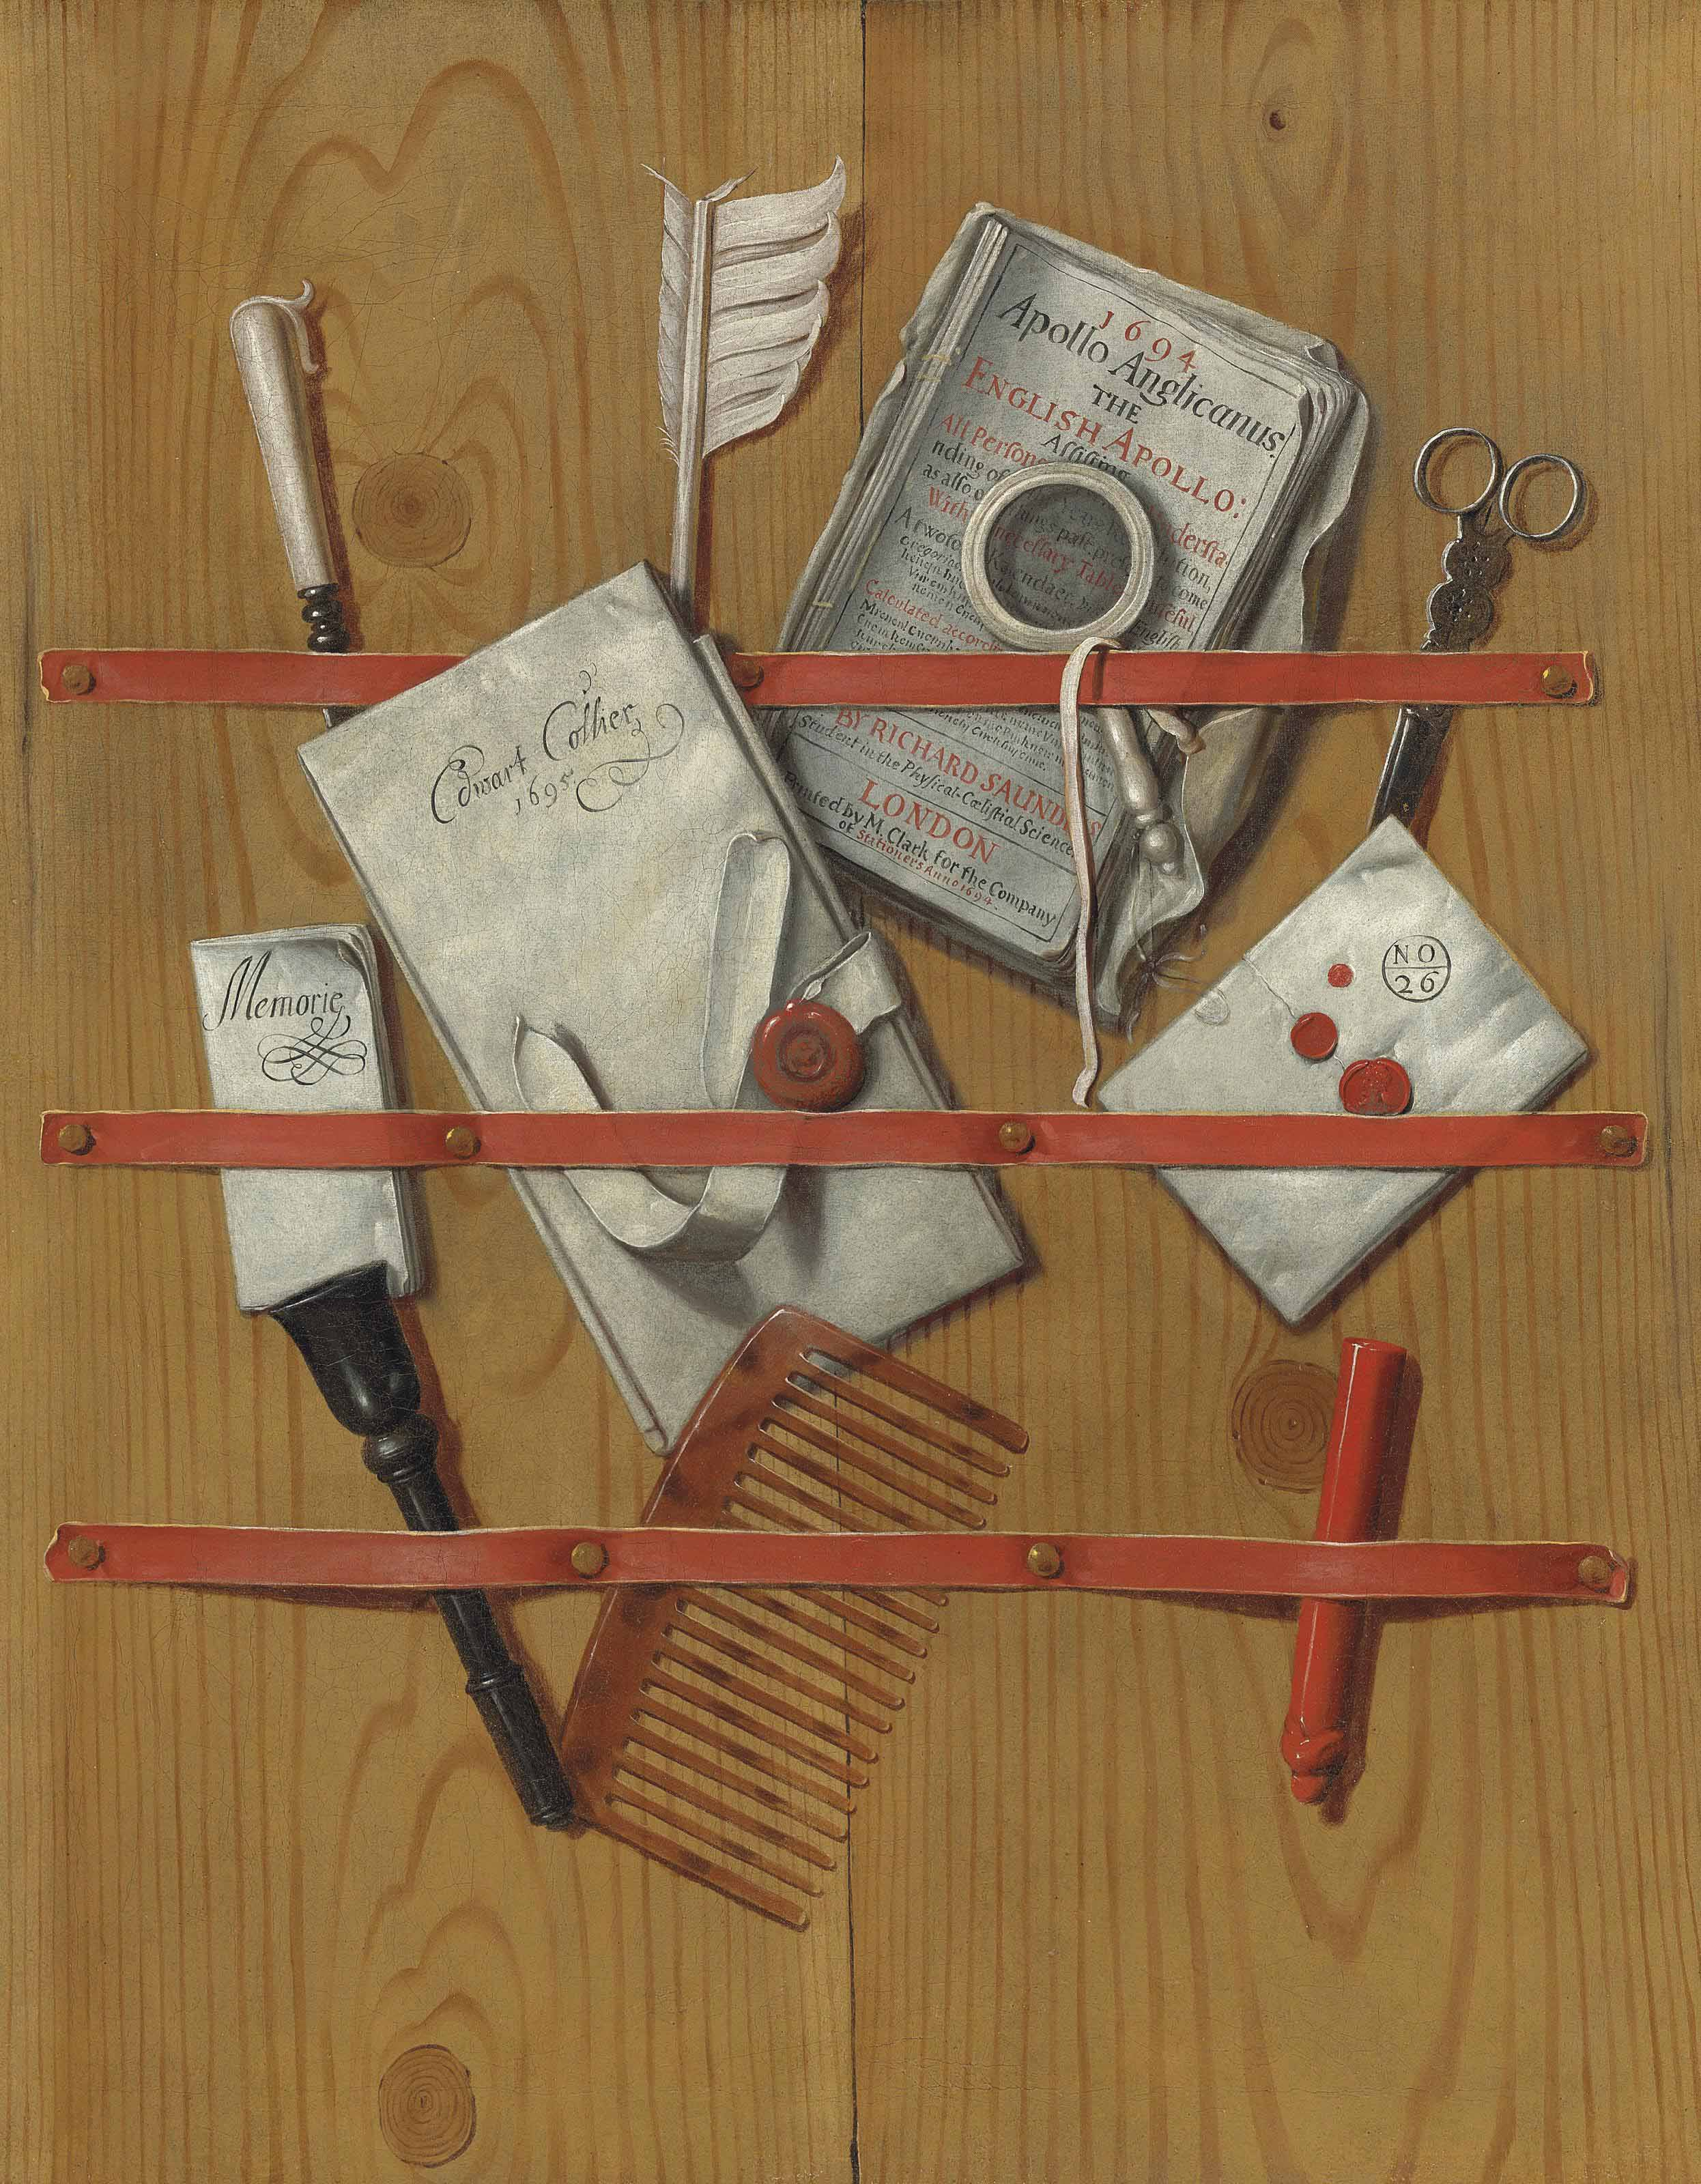 A trompe l'oeil of letters, a newspaper, a quill, a magnifying glass and other objects assembled behind ribbons upon wooden boards